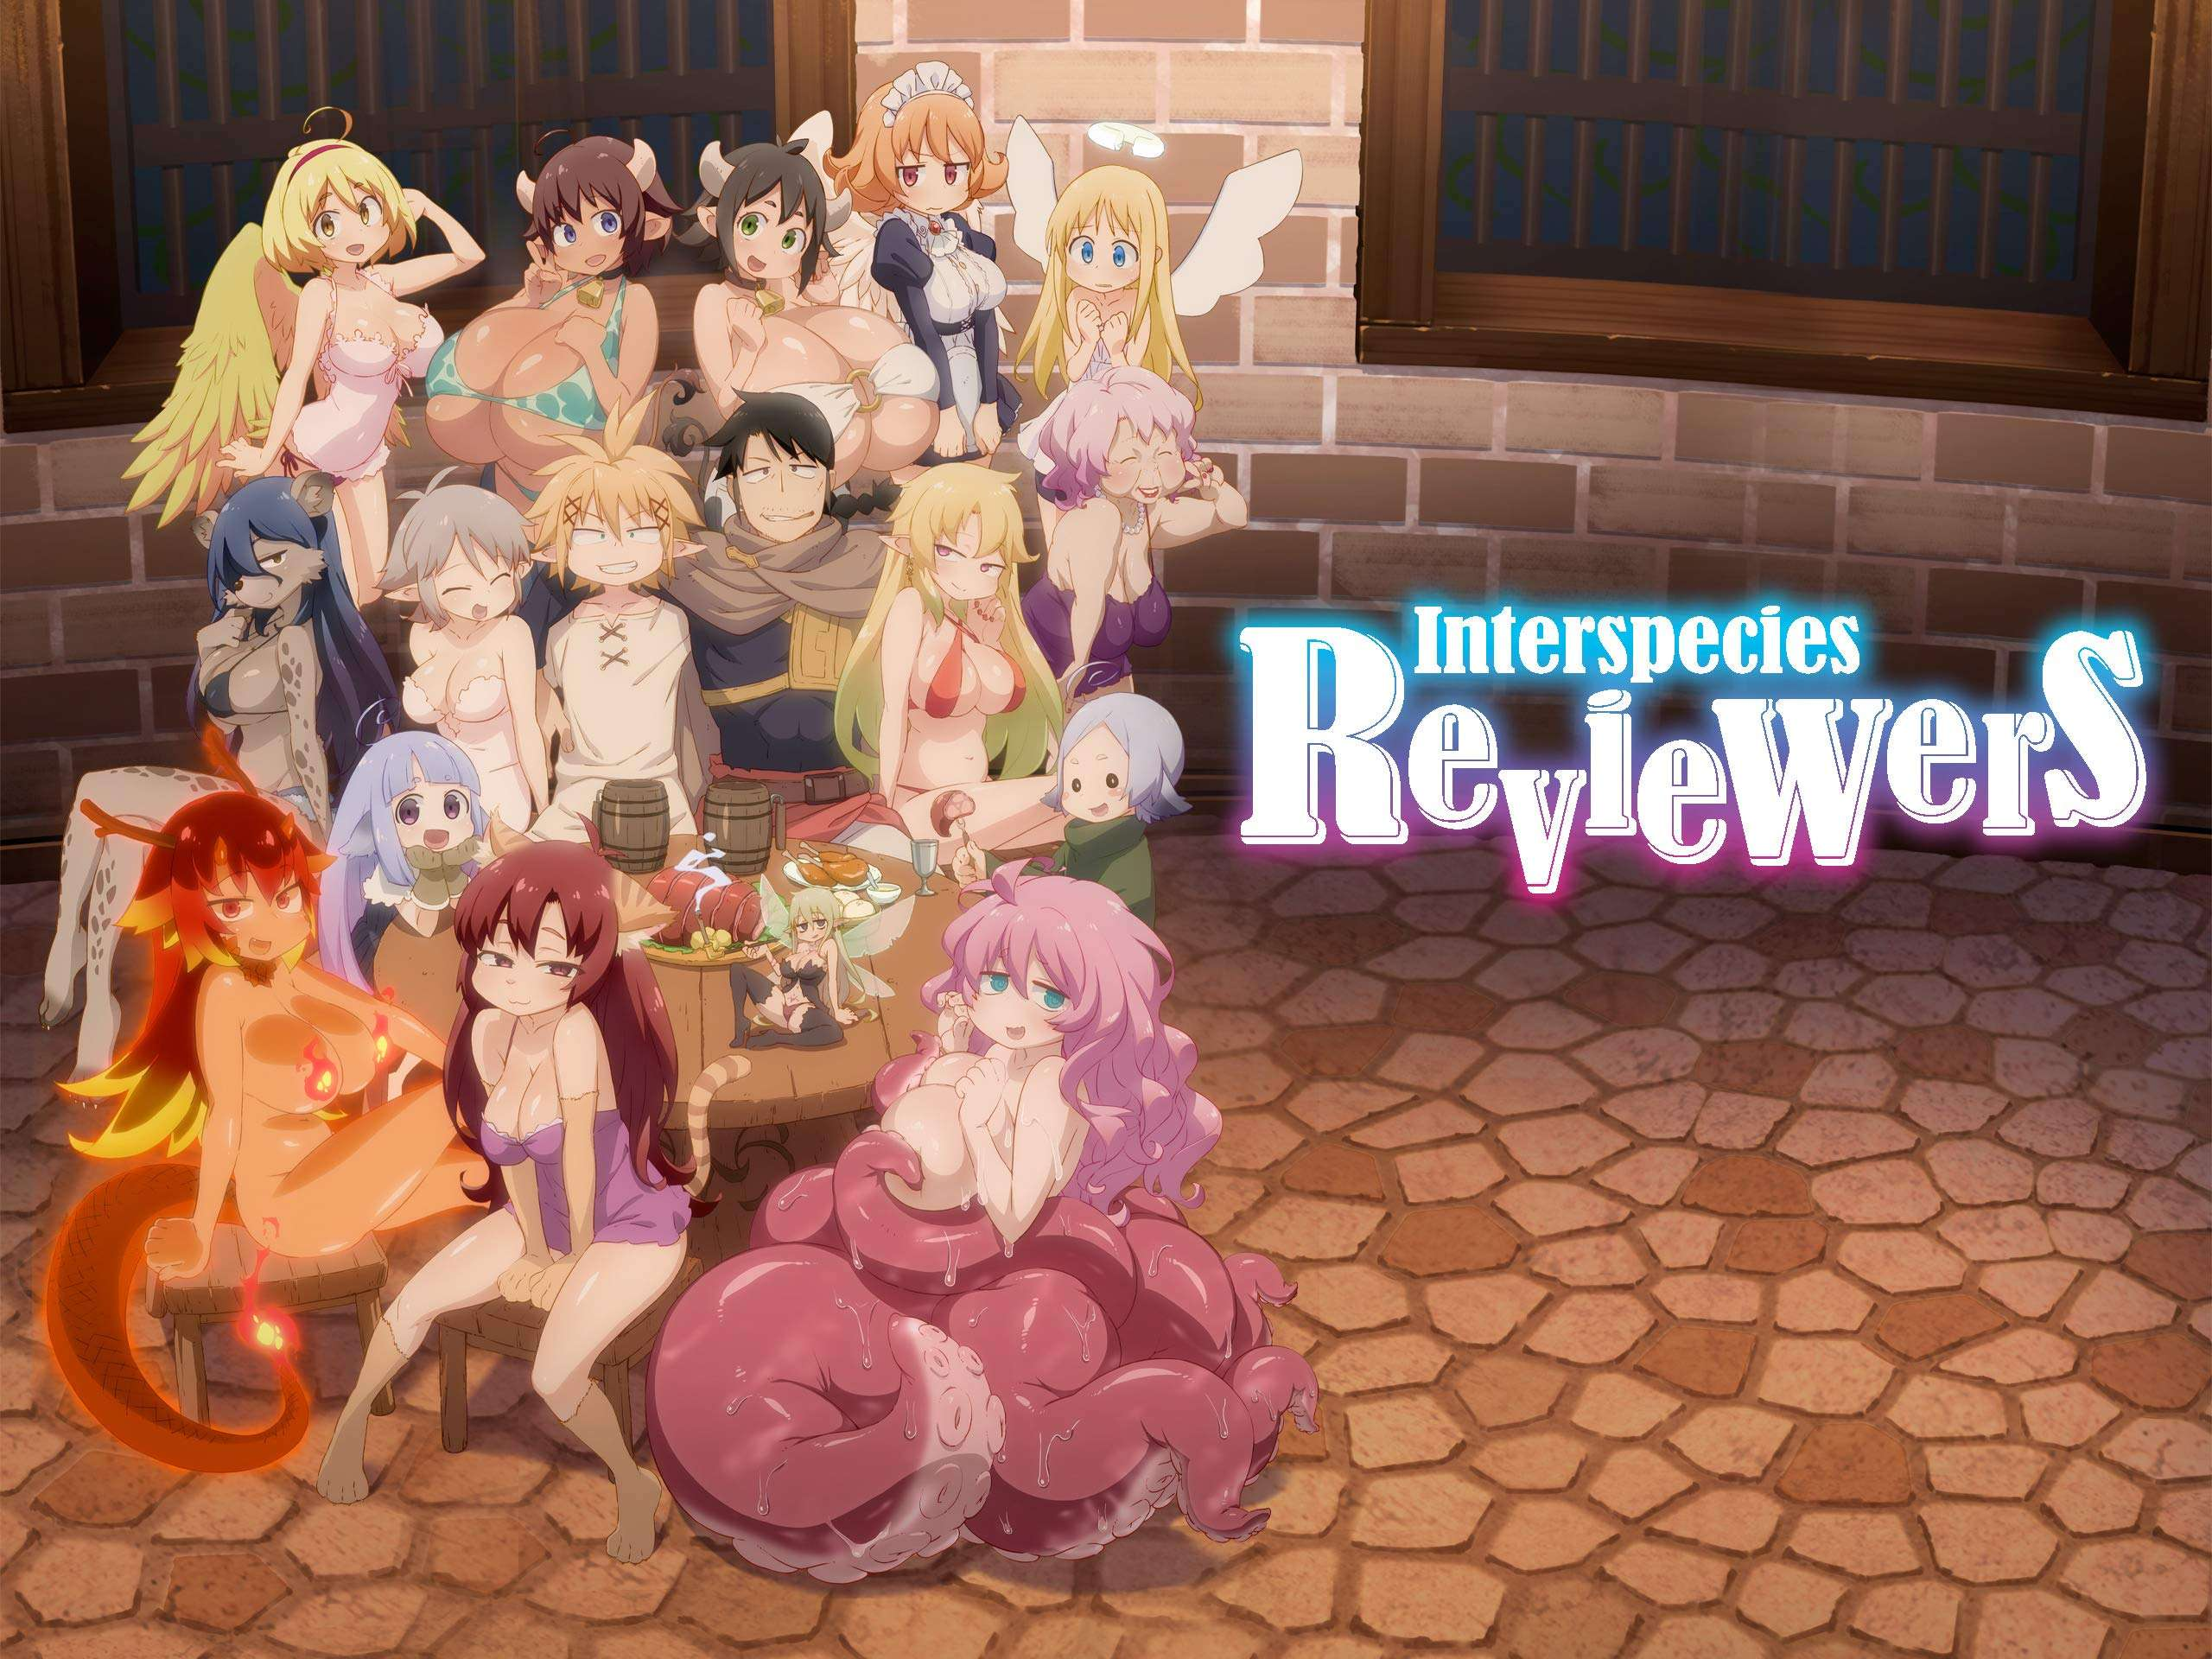 'Interspecies Reviewers' Got Canceled For Its Inappropriate Content